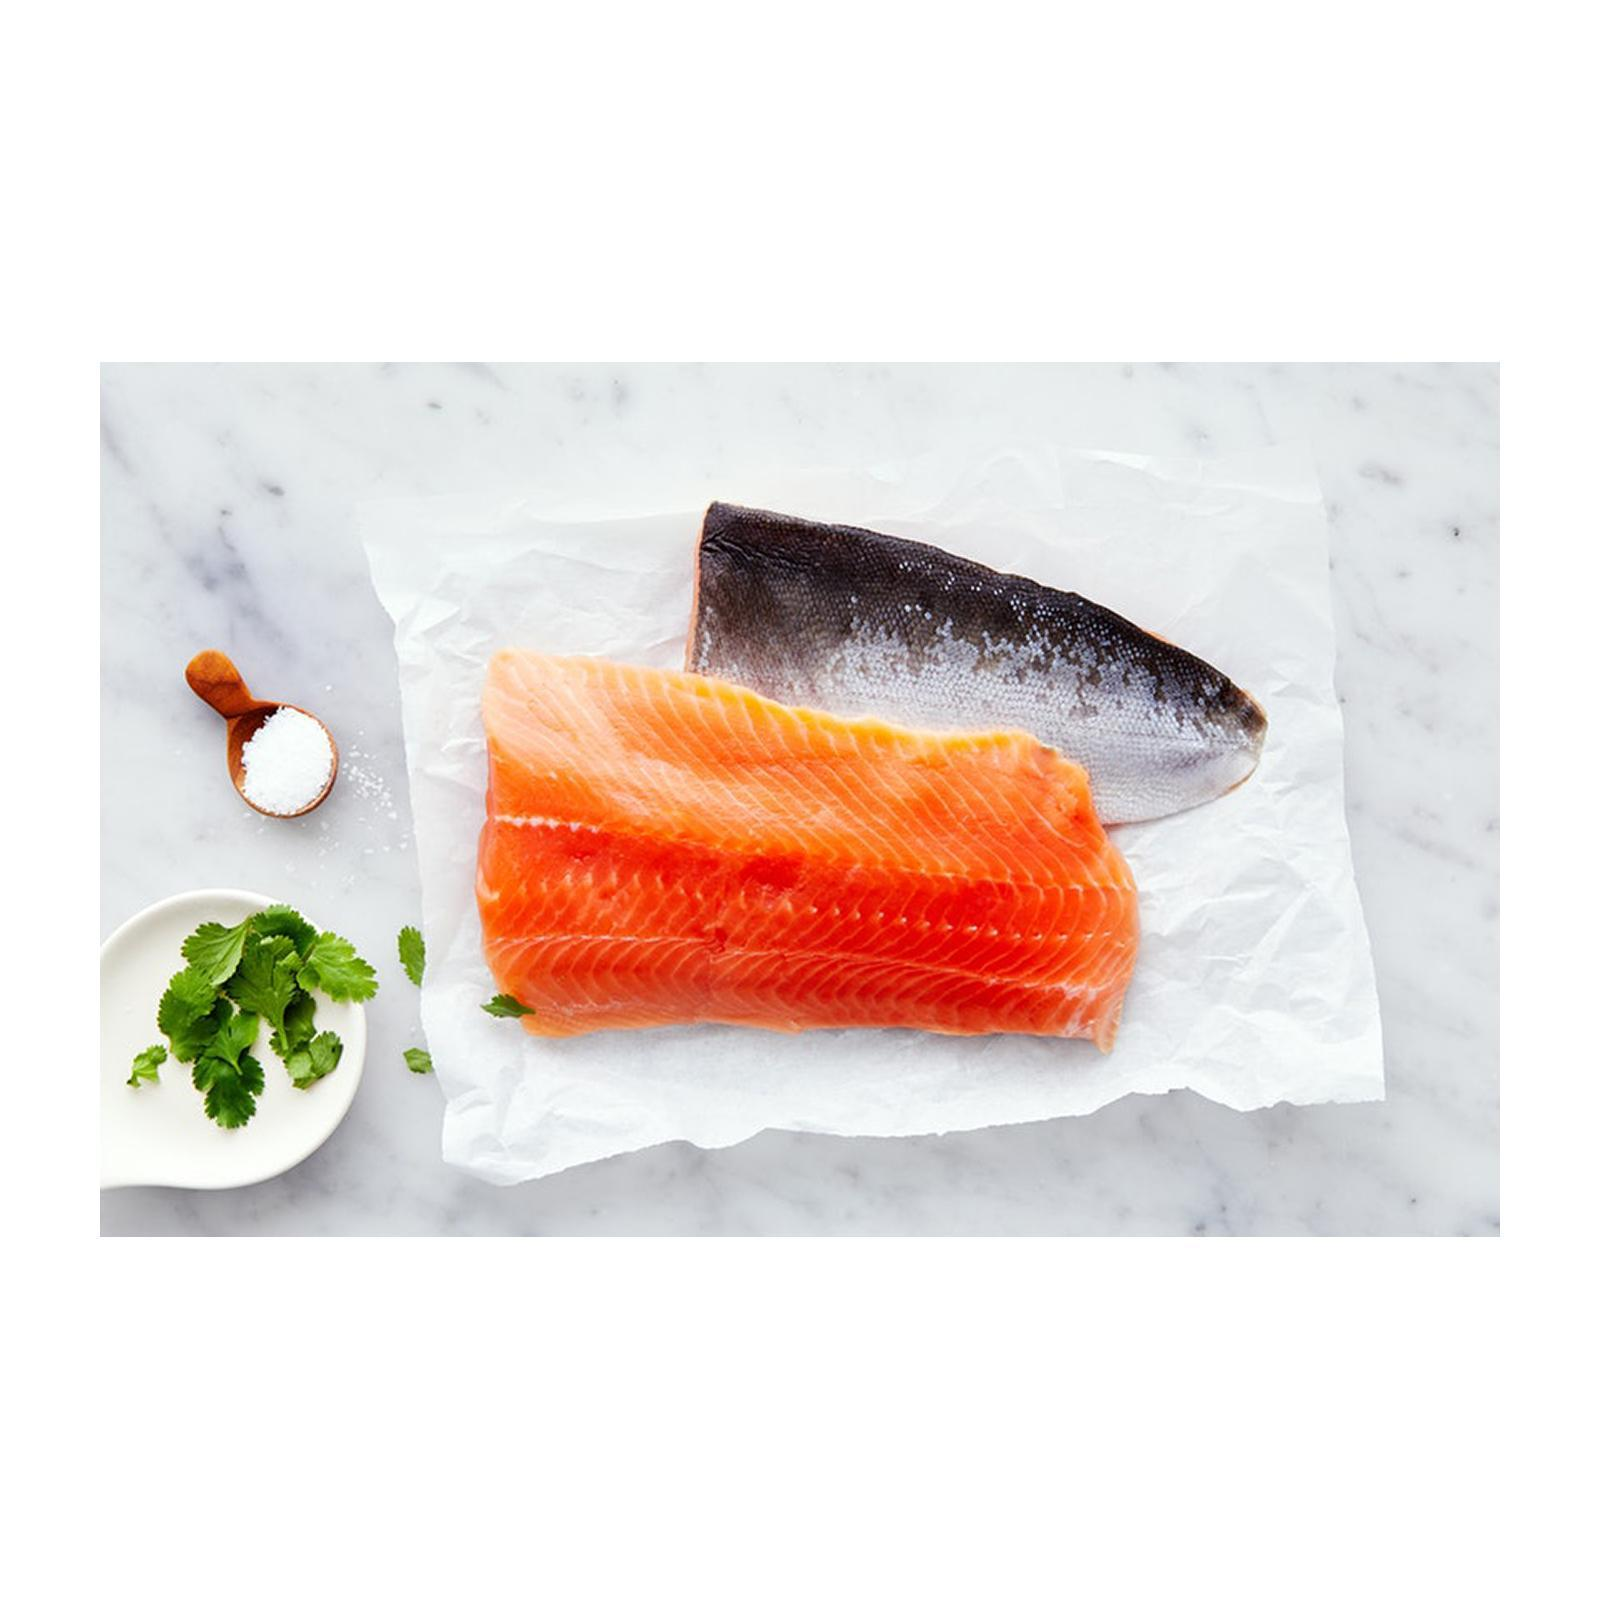 Catch Seafood Alaskan Wild Caught Salmon Skin On - Frozen